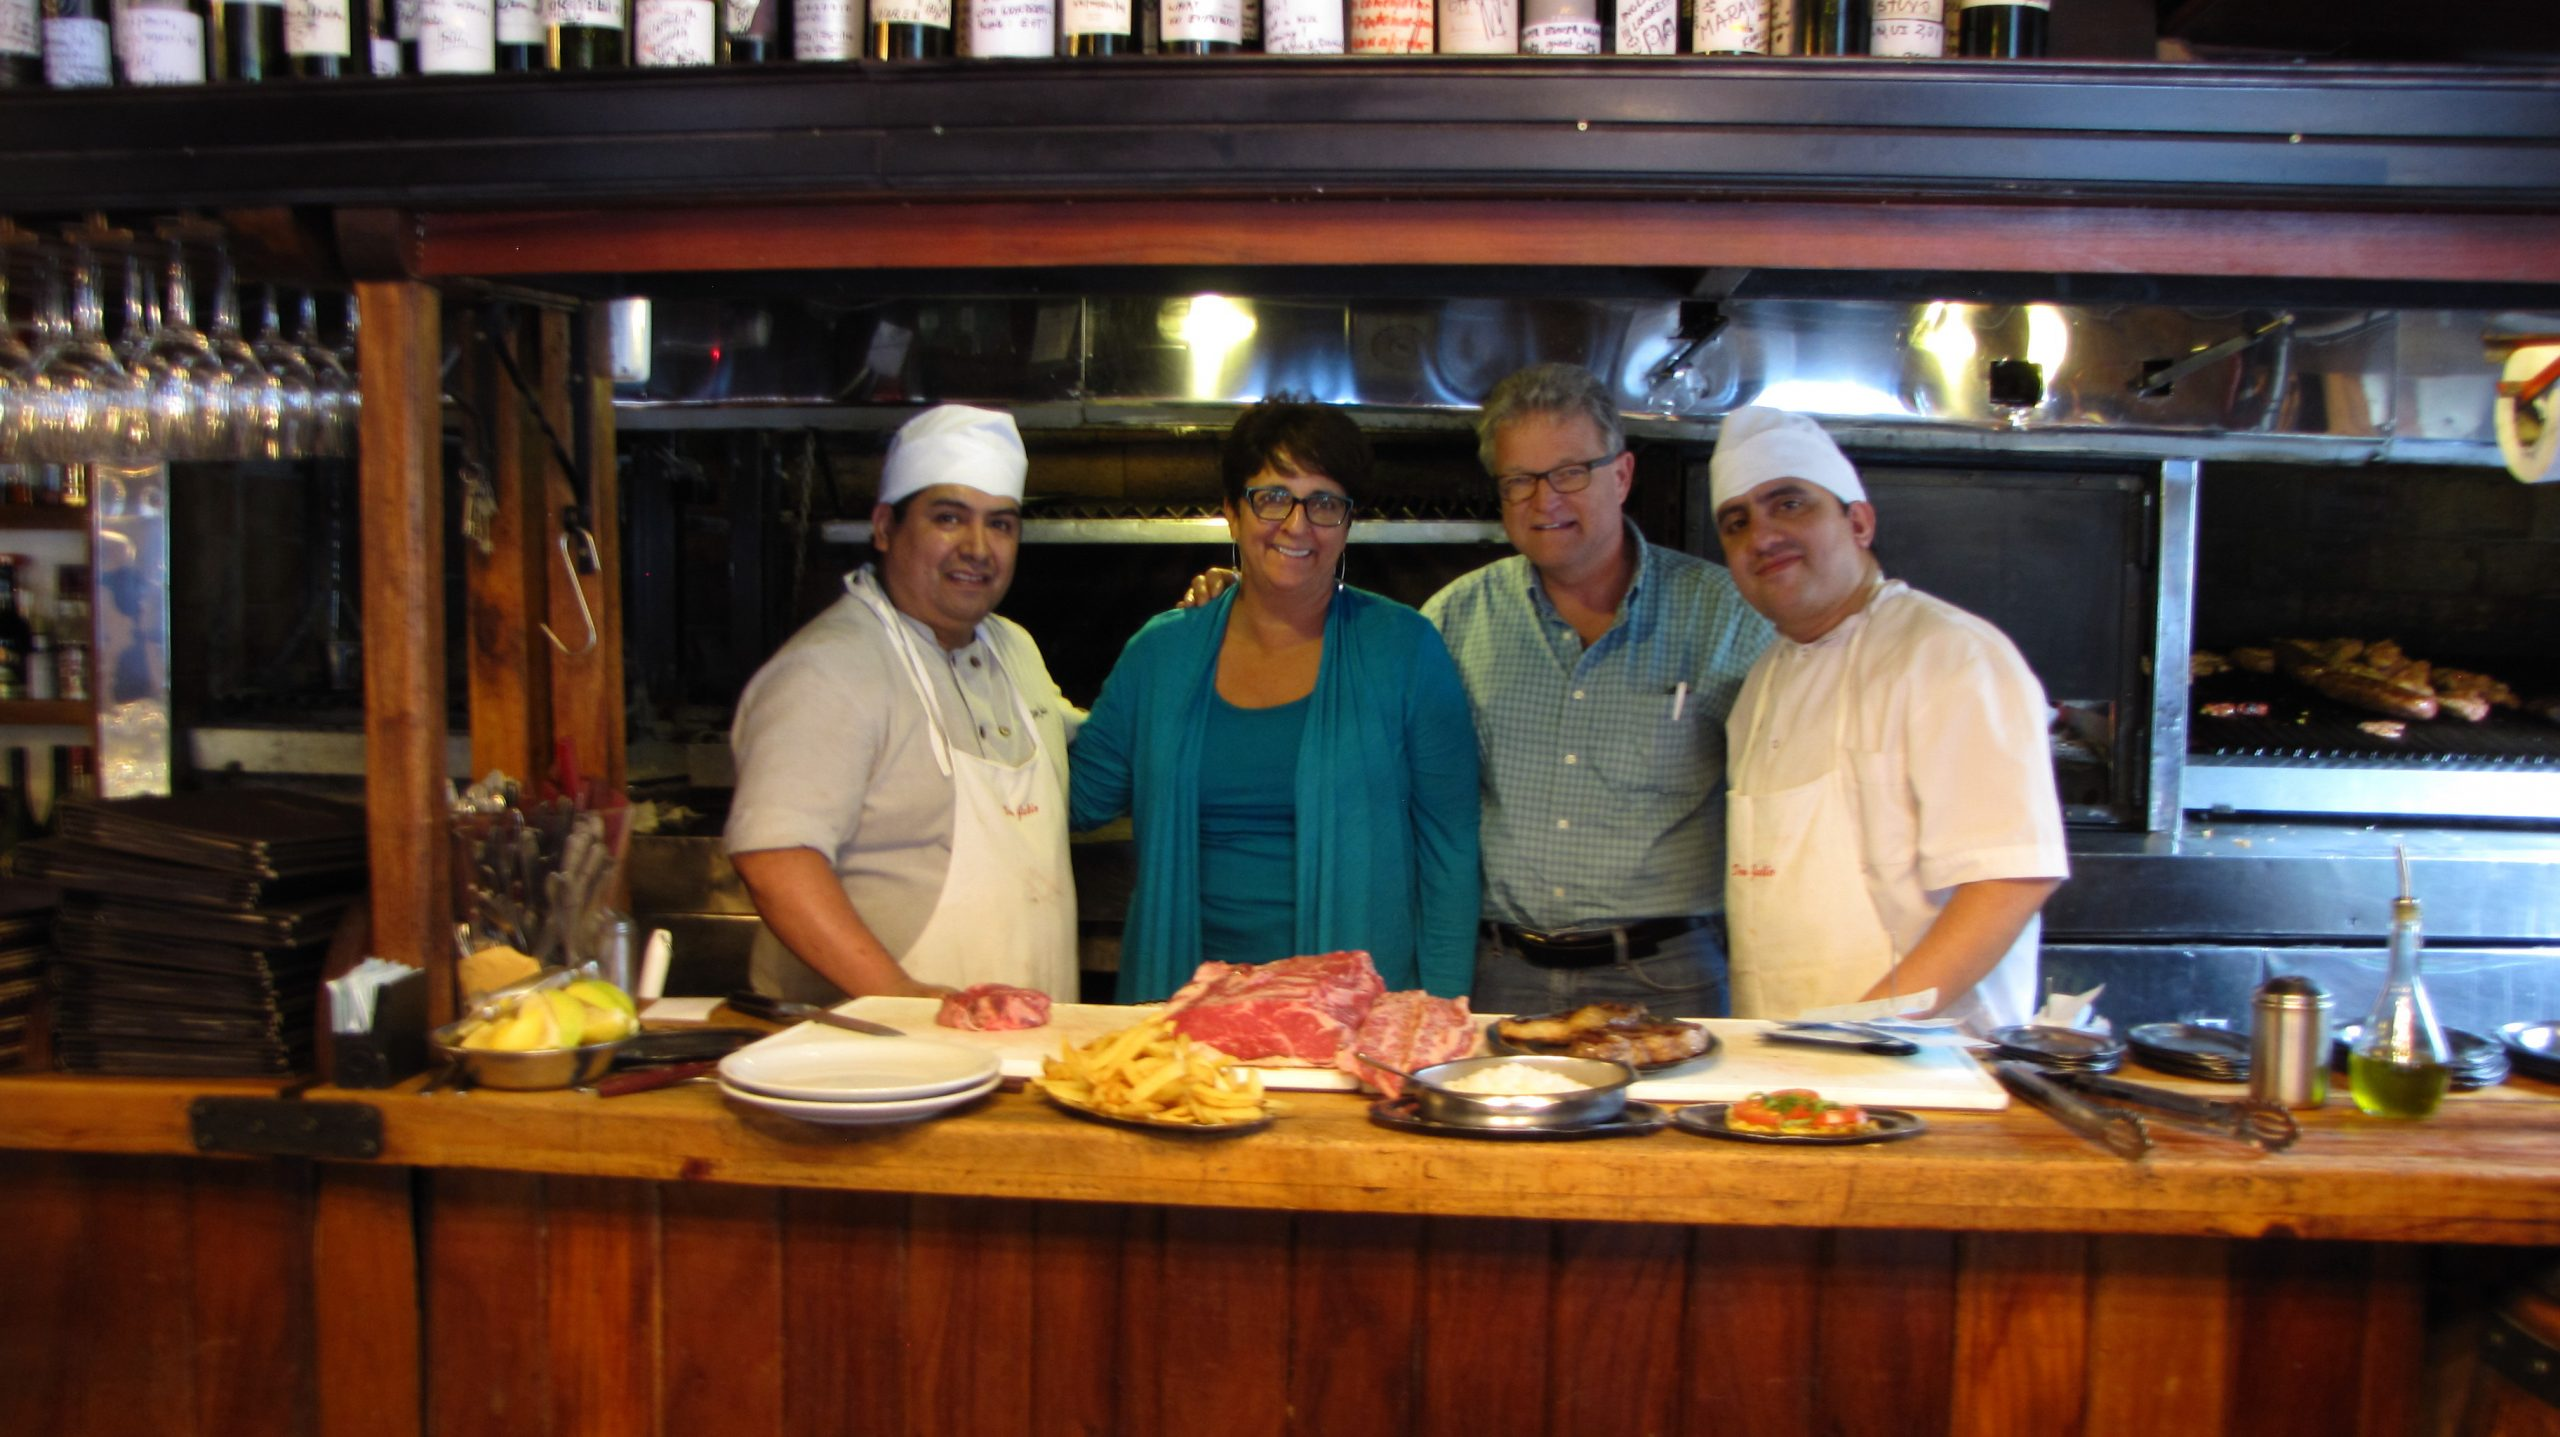 Cindy and Charlie with the chefs at Don Julio restaurant